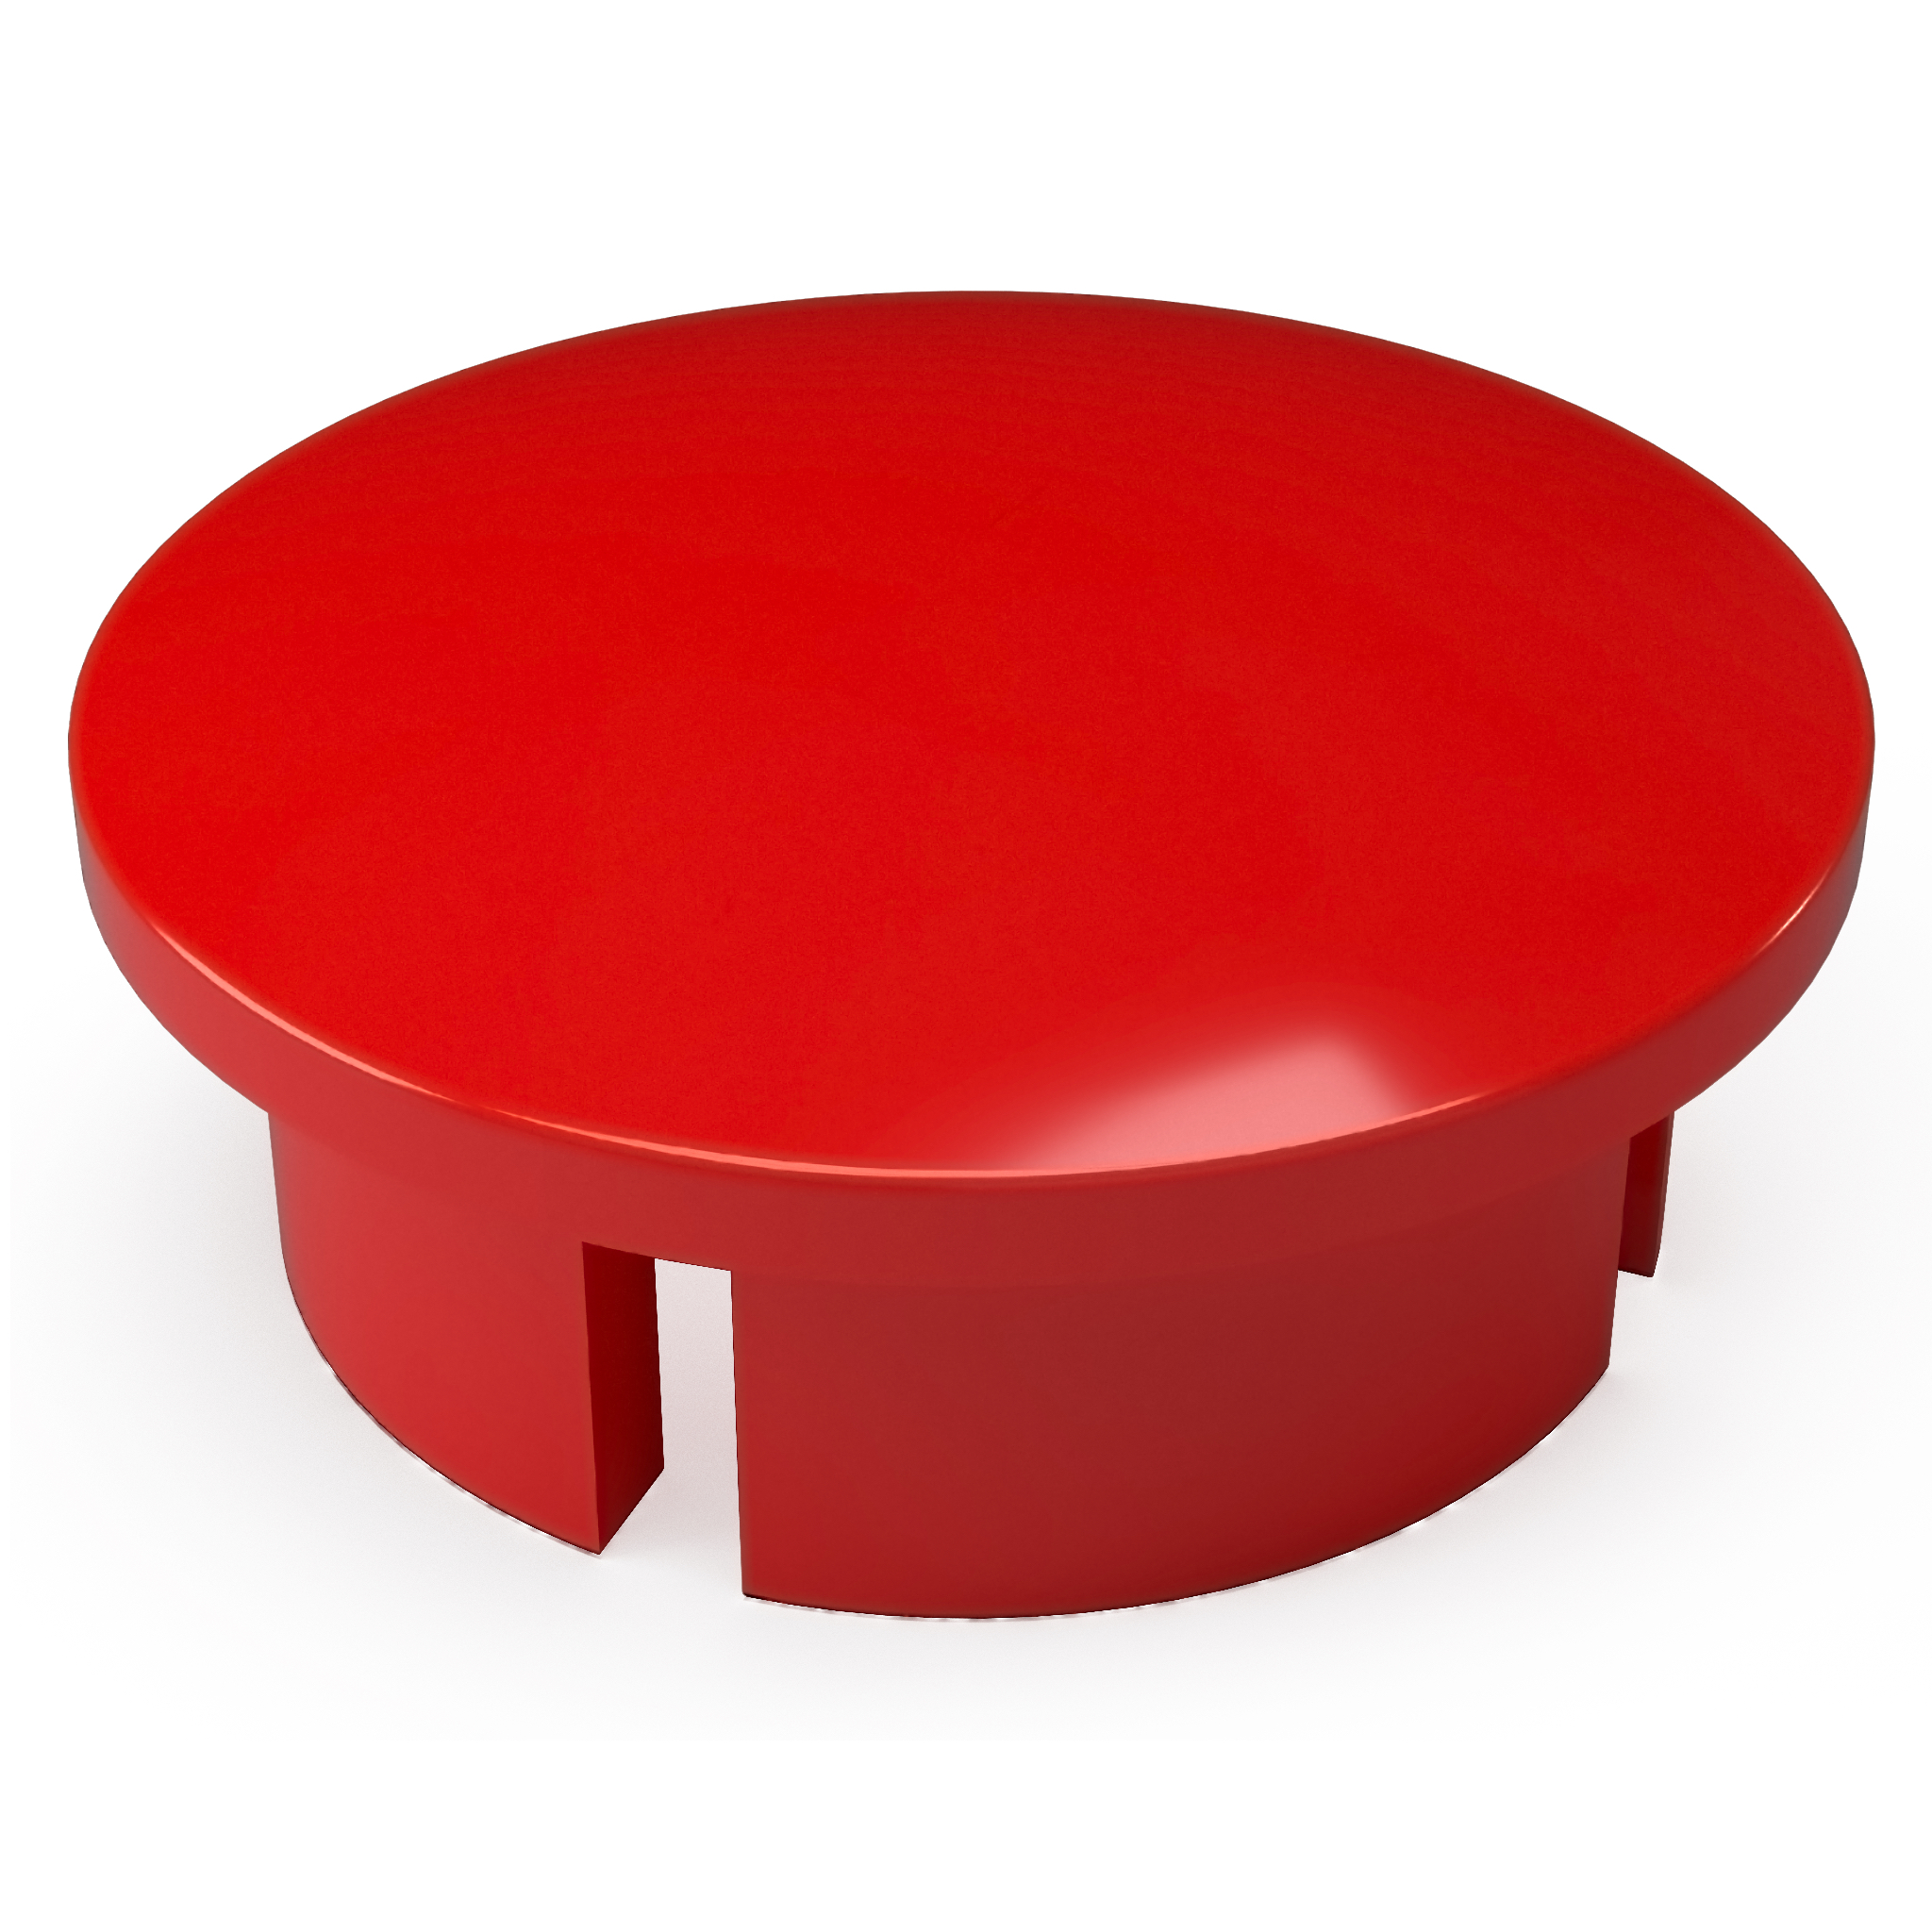 FORMUFIT F034IDC-RD-10 PVC Internal Domed End Cap, Furniture Grade, 3/4 in. Size, Red , 10-Pack